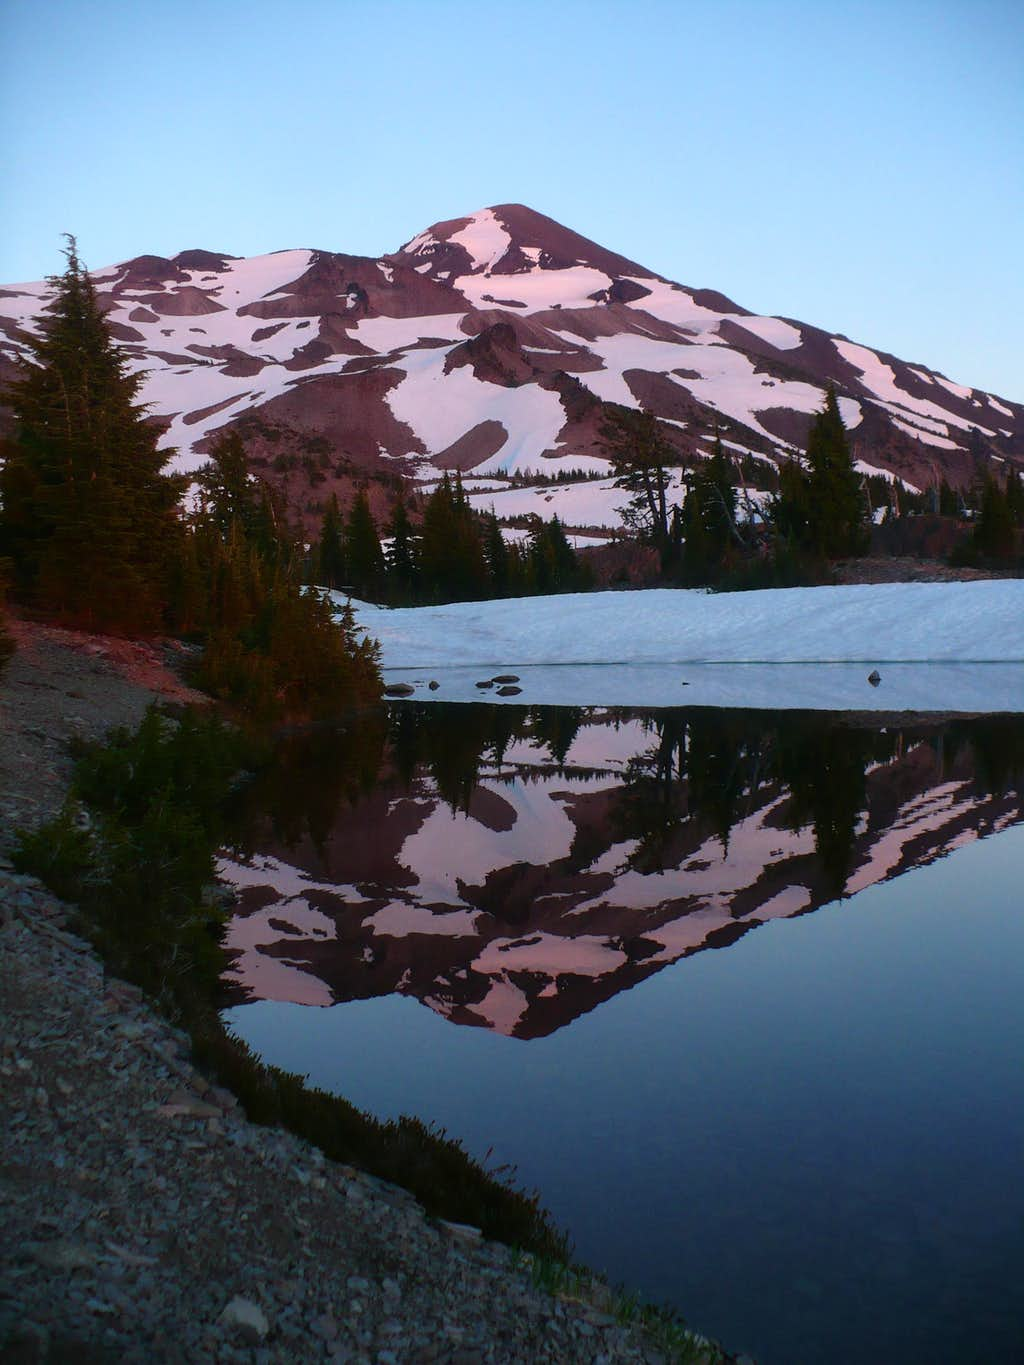 Middle Sister reflected in Arrowhead Lake